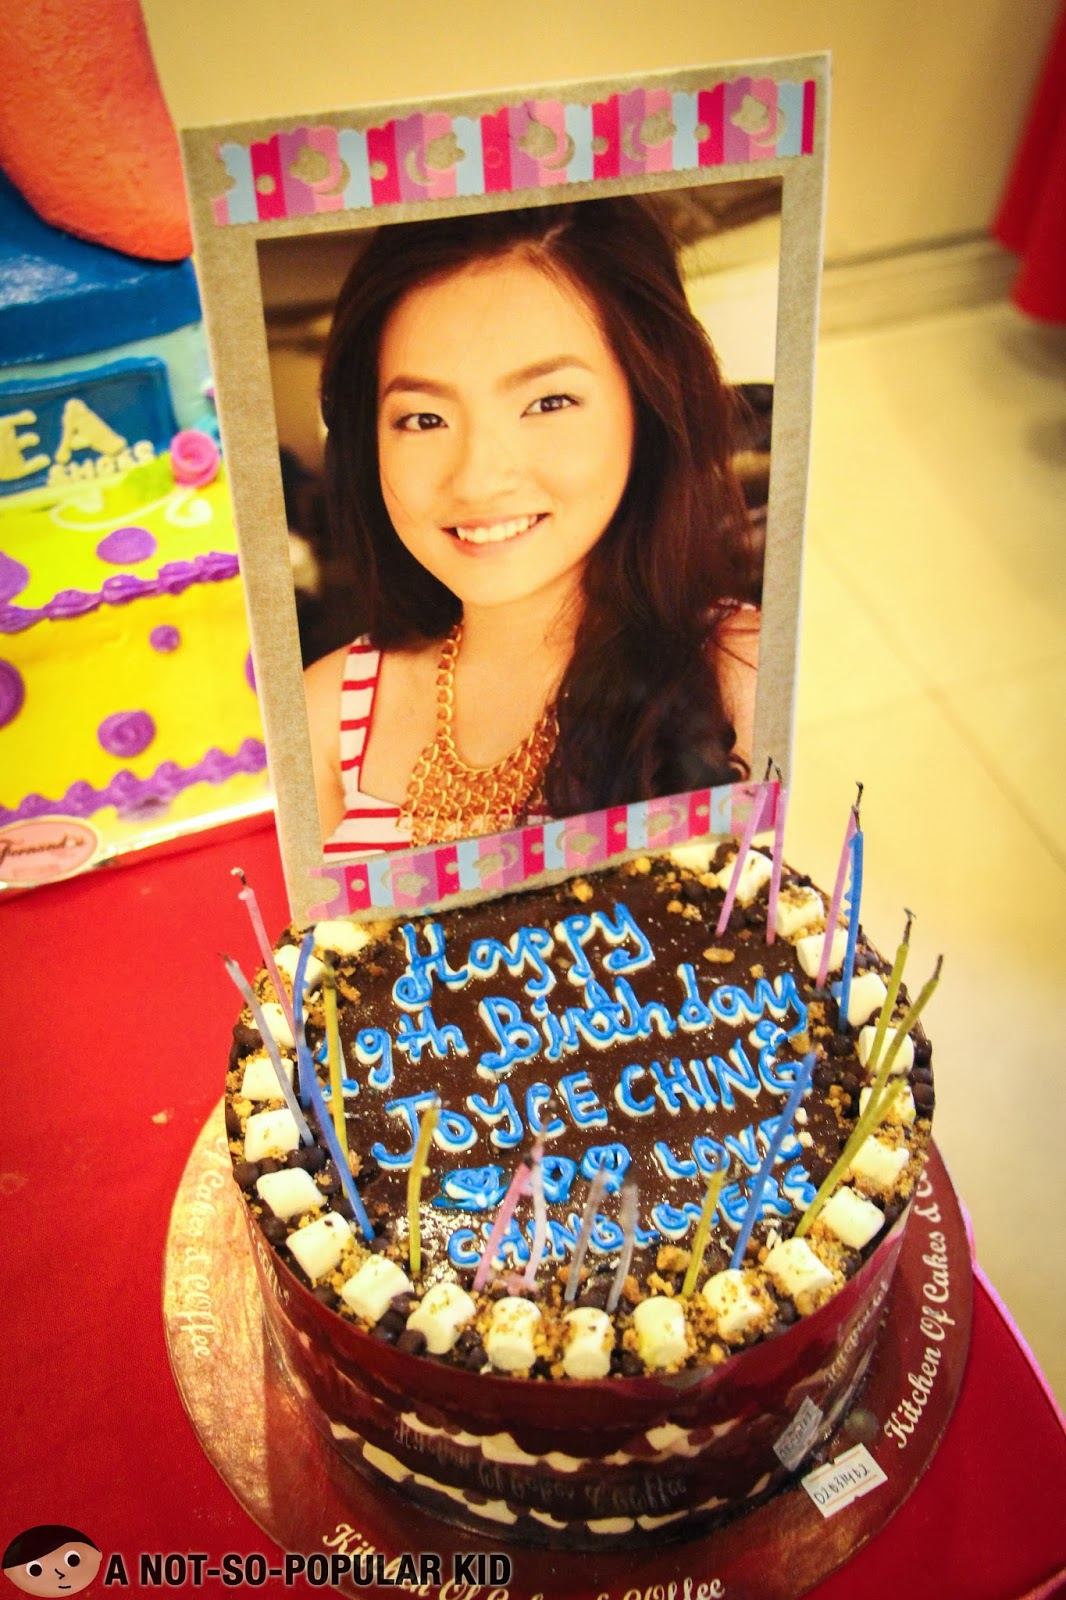 Cake from Chinglovers for no other than Joyce Ching!